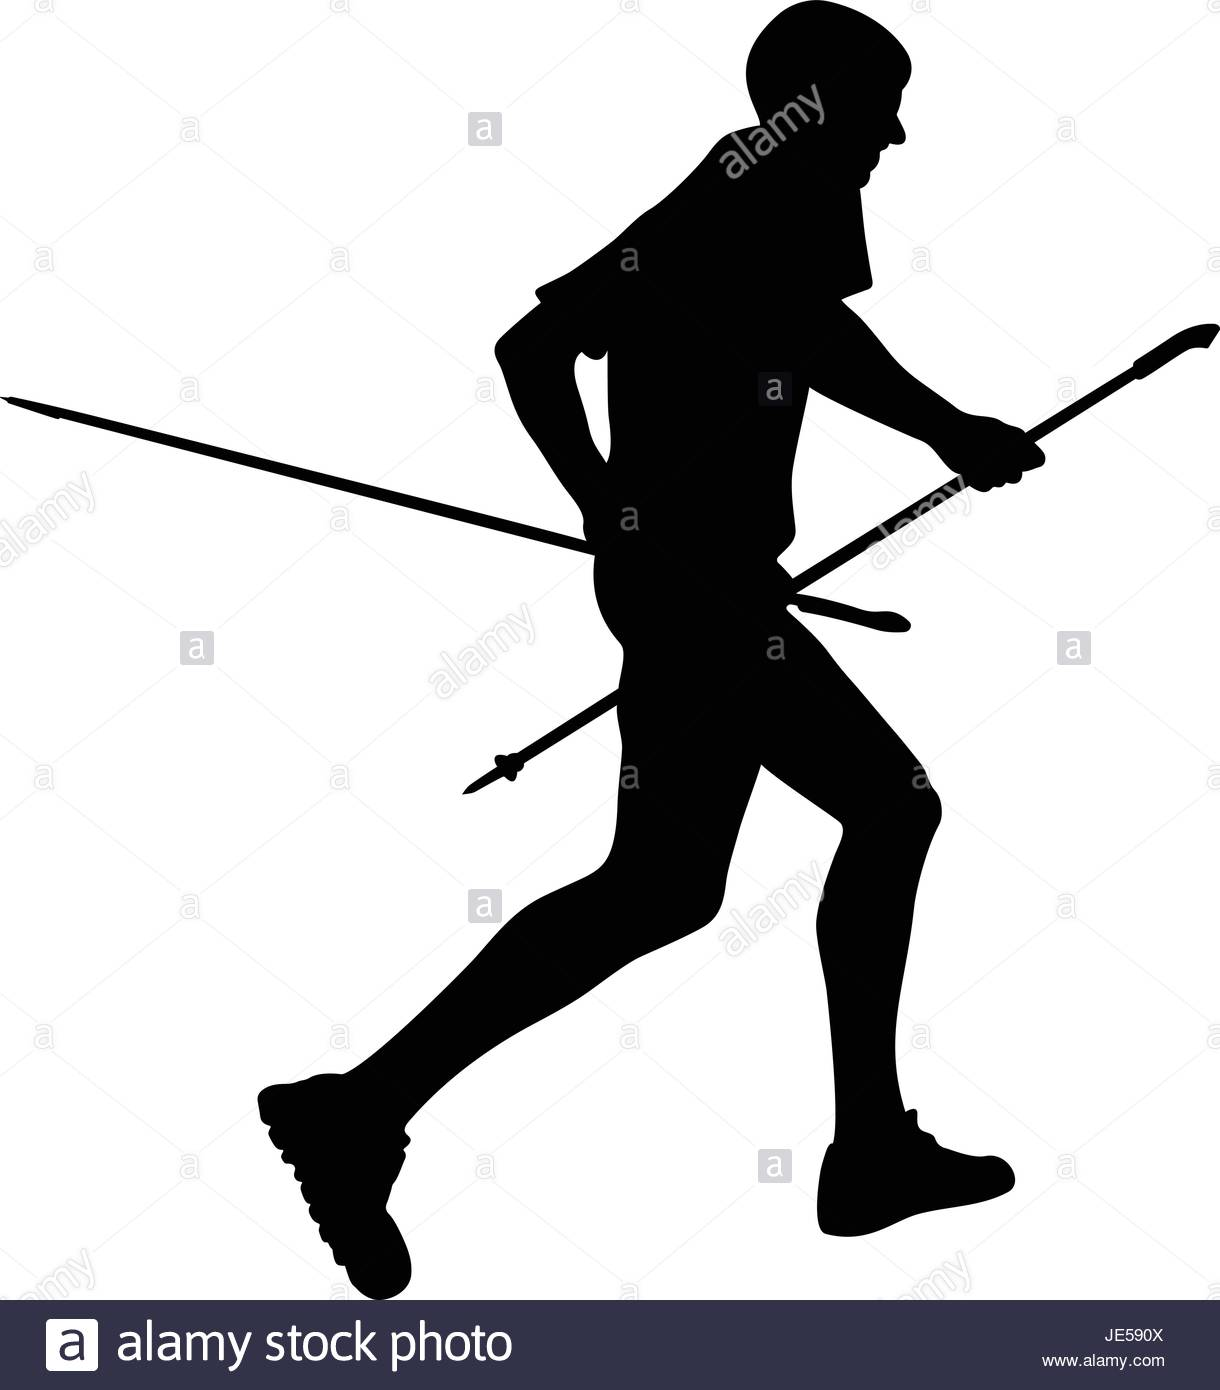 1220x1390 Side View Black Silhouette Male Runner With Trekking Poles Running